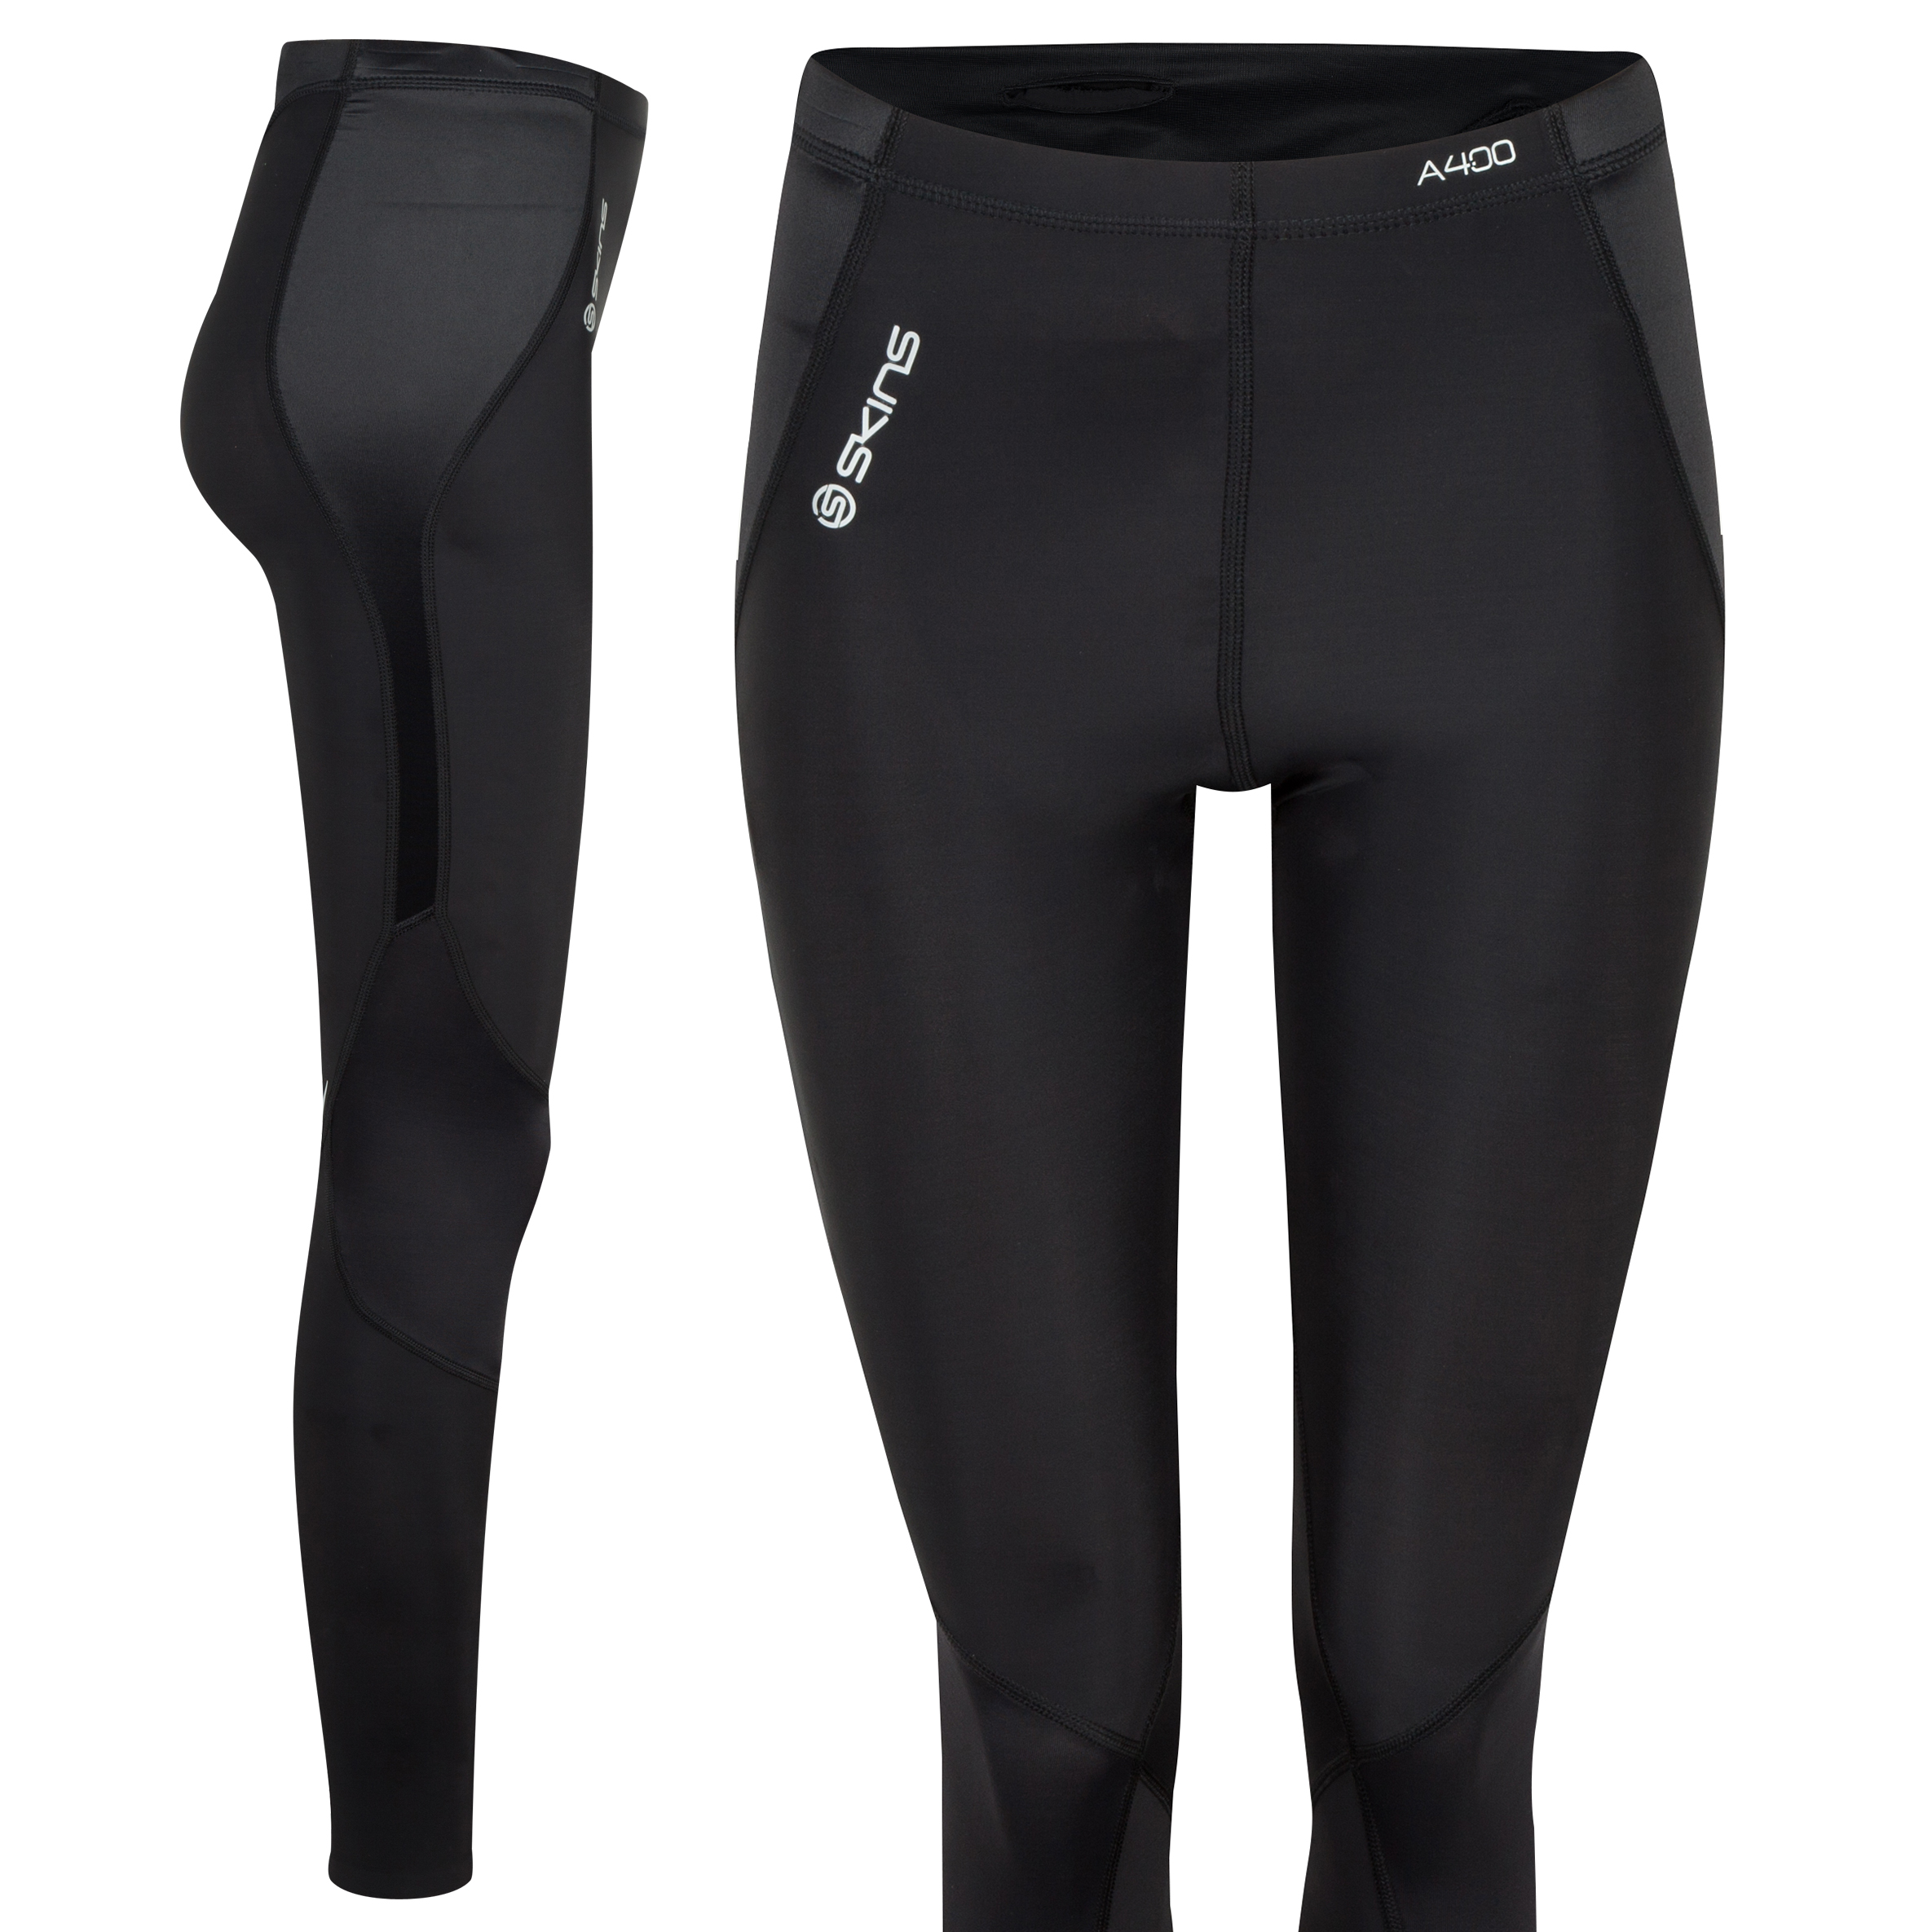 Skins A400 Active Long Tights-Black/Silver - Womens